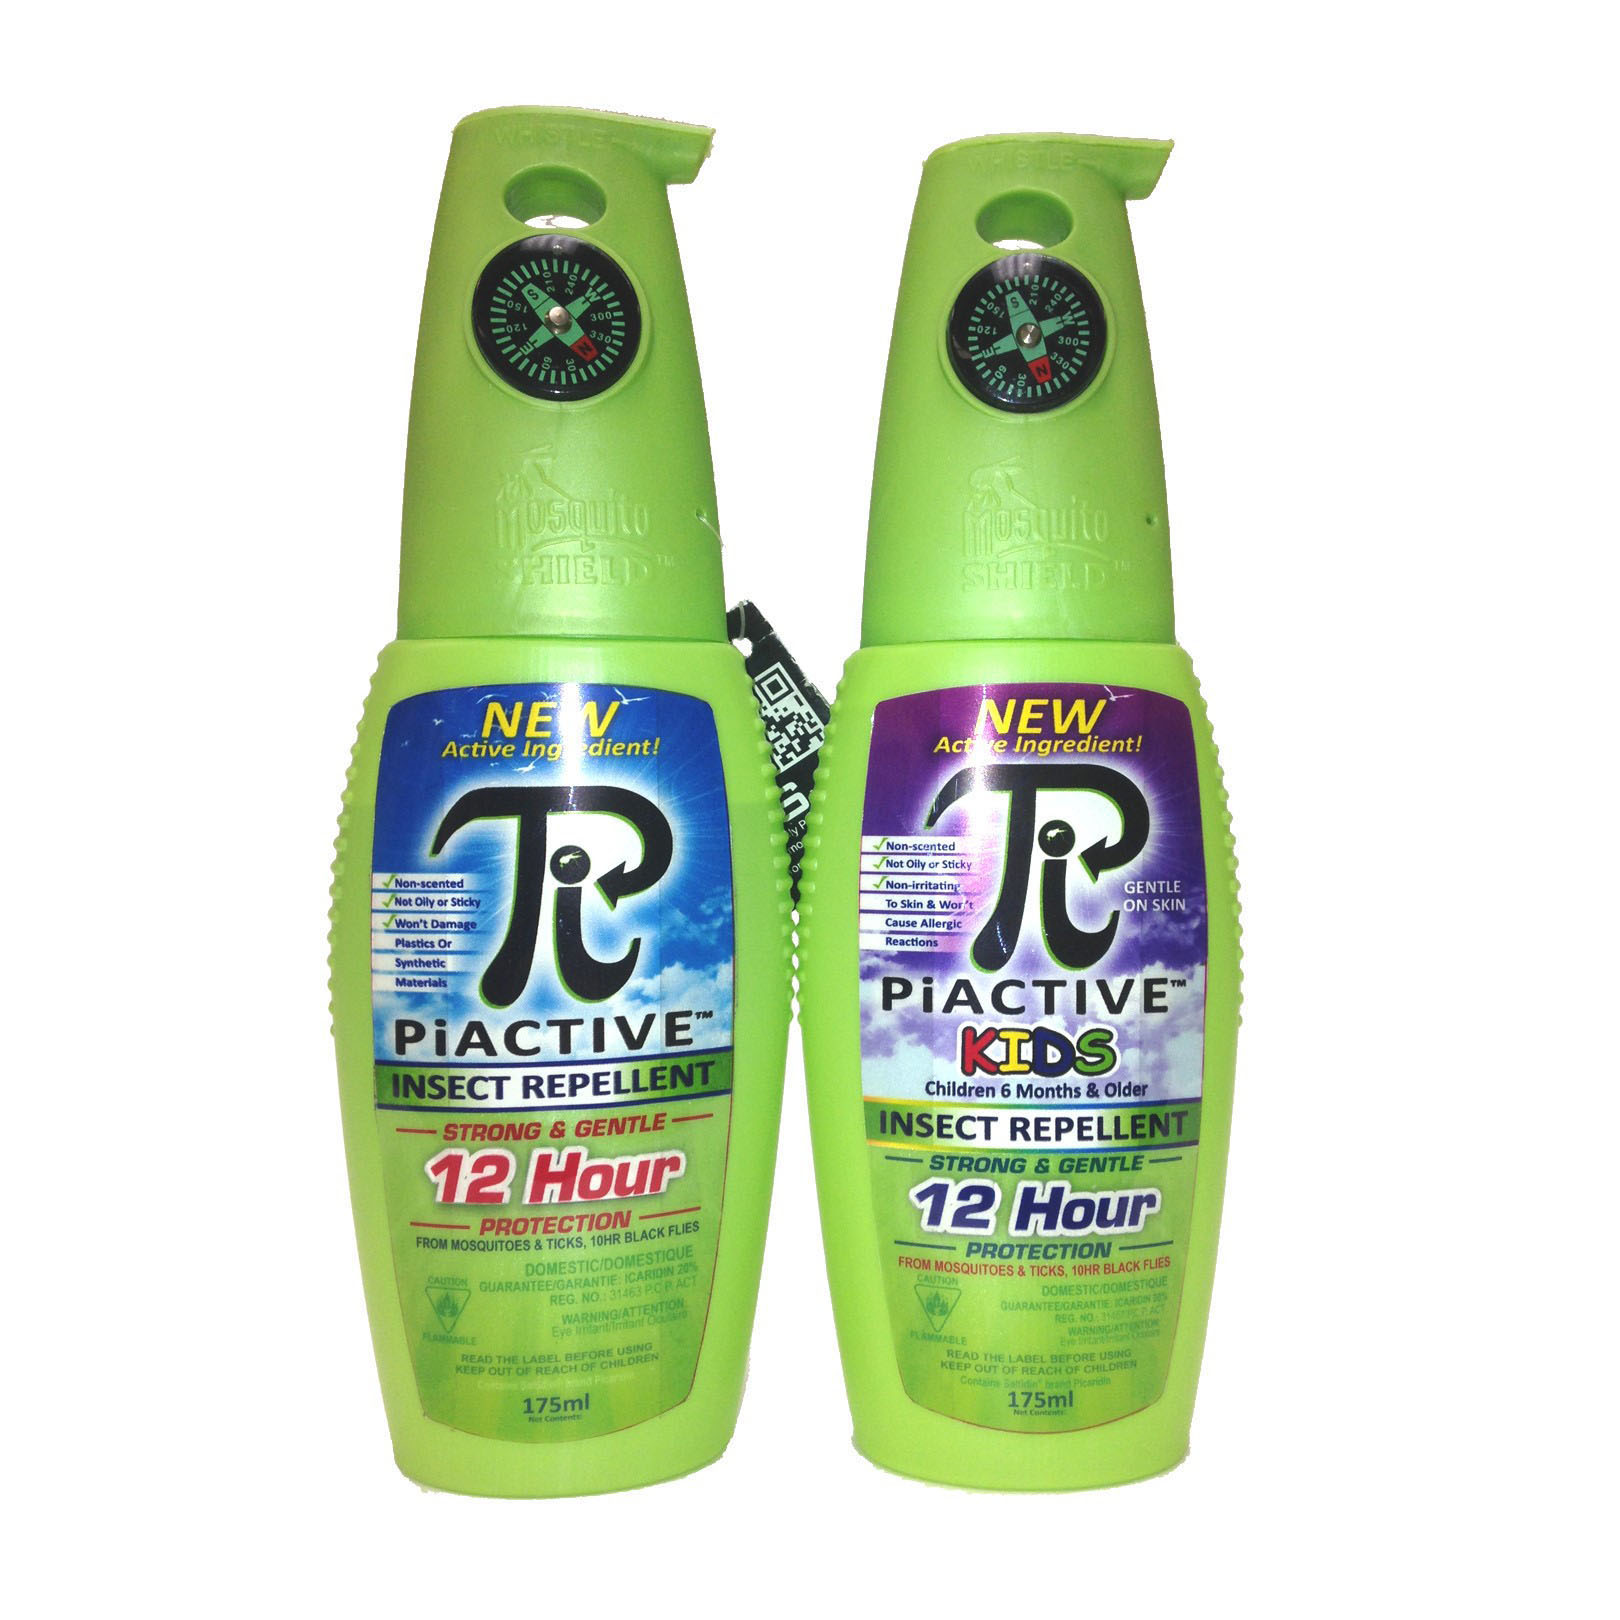 PiACTIVE™ Insect Repellent Kids and Adults